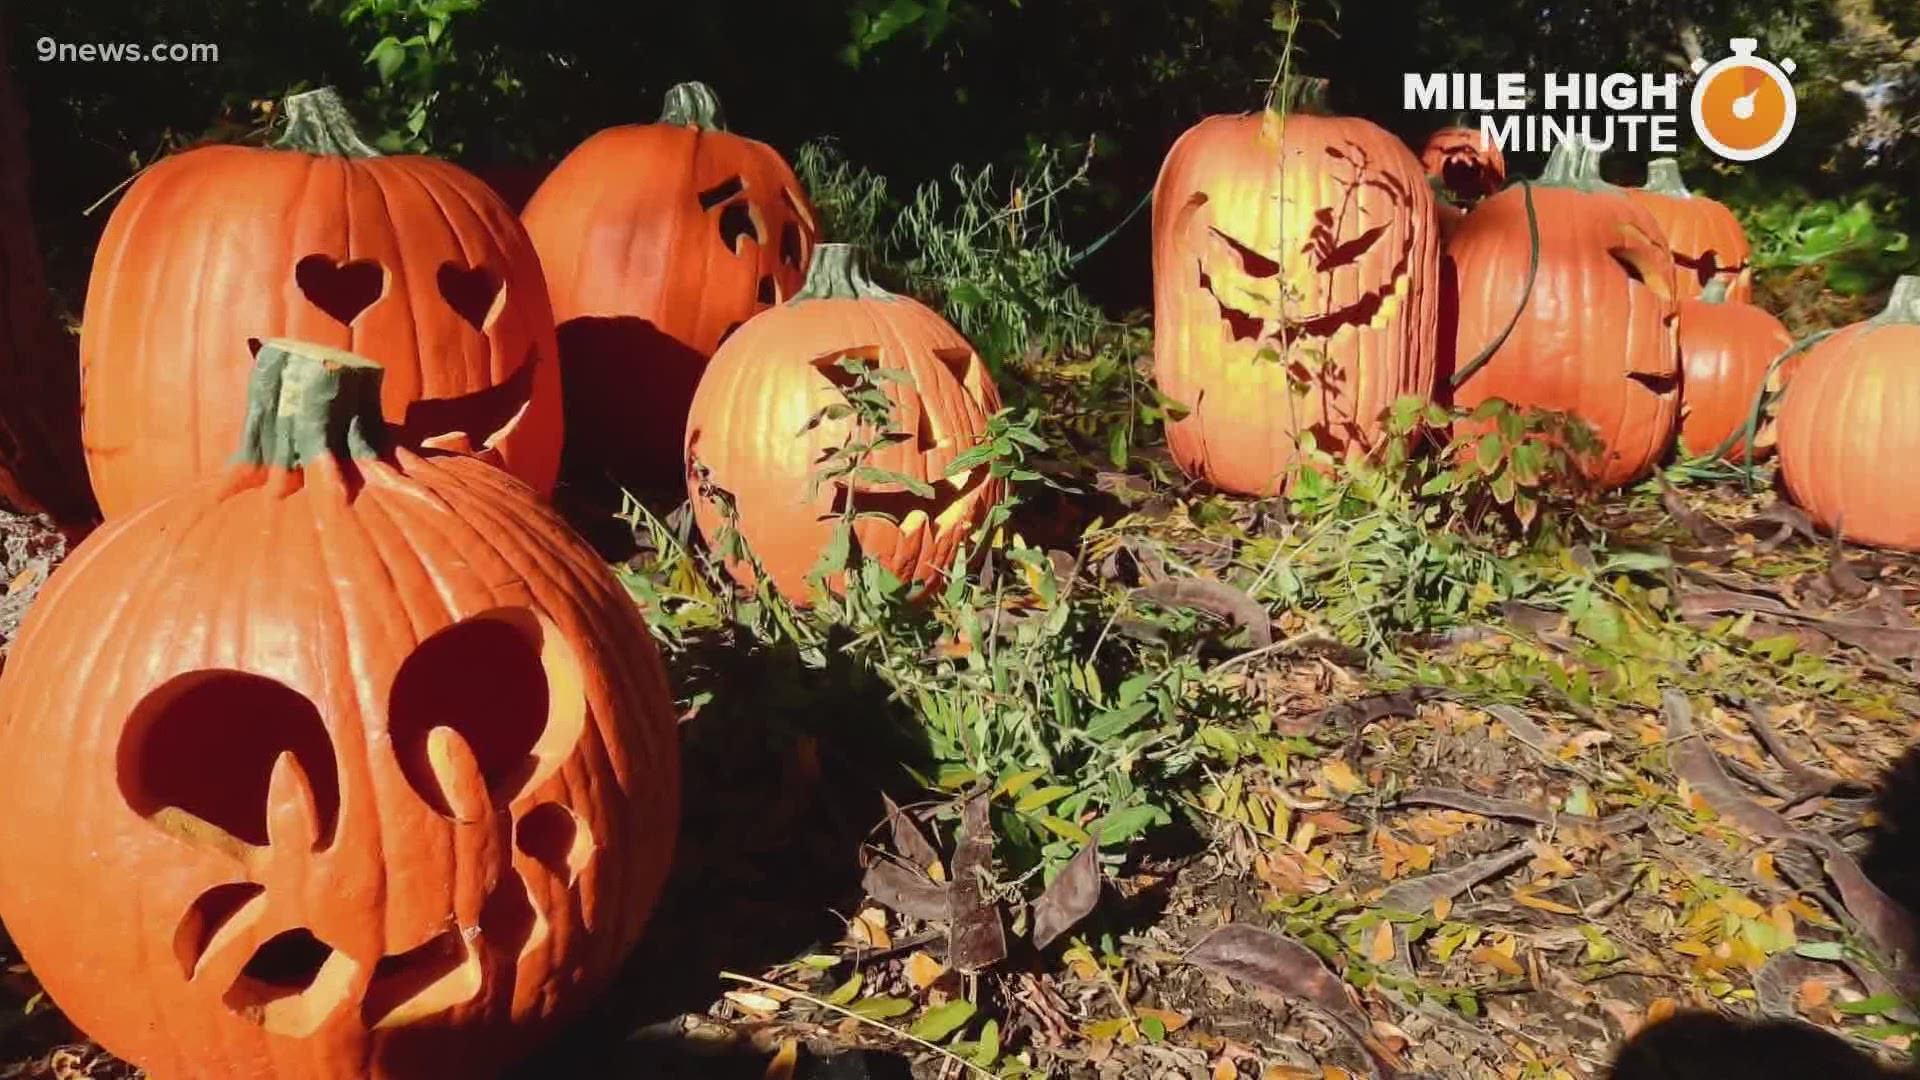 Halloween Weather In Denver 2020 Denver Zoo 'Boo at the Zoo' is back in 2020 with some changes